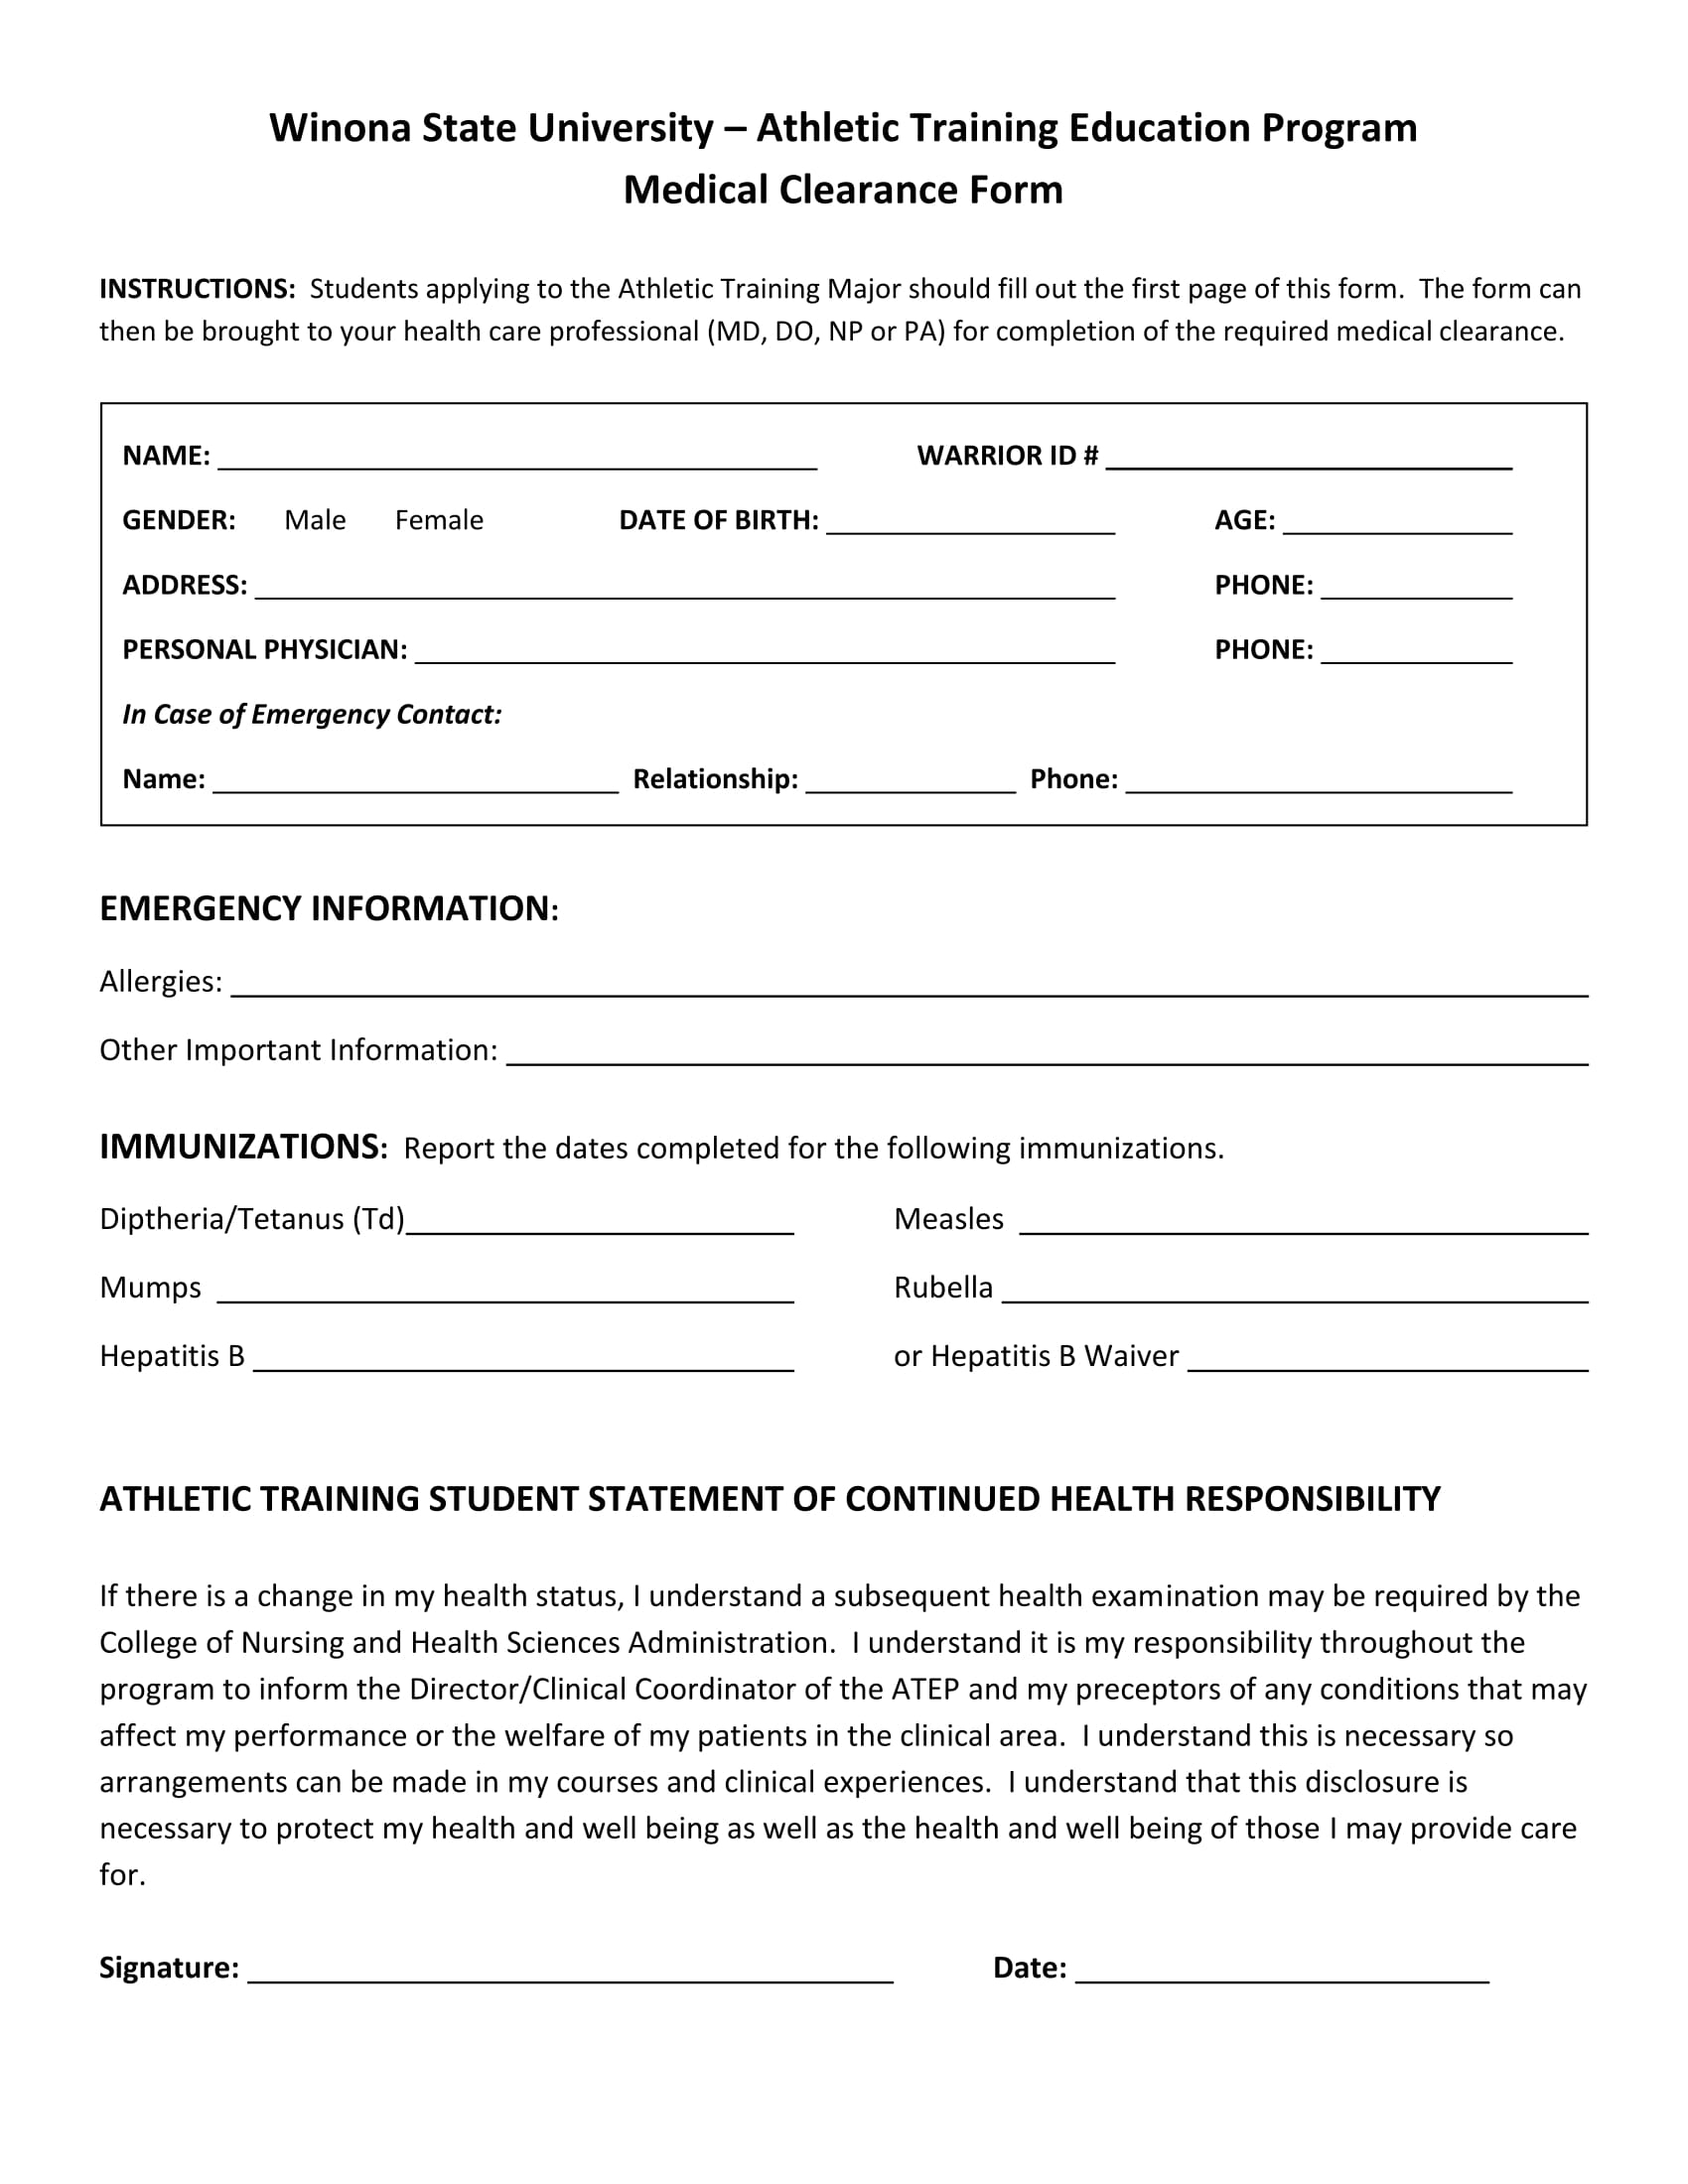 athlete training medical clearance form 1